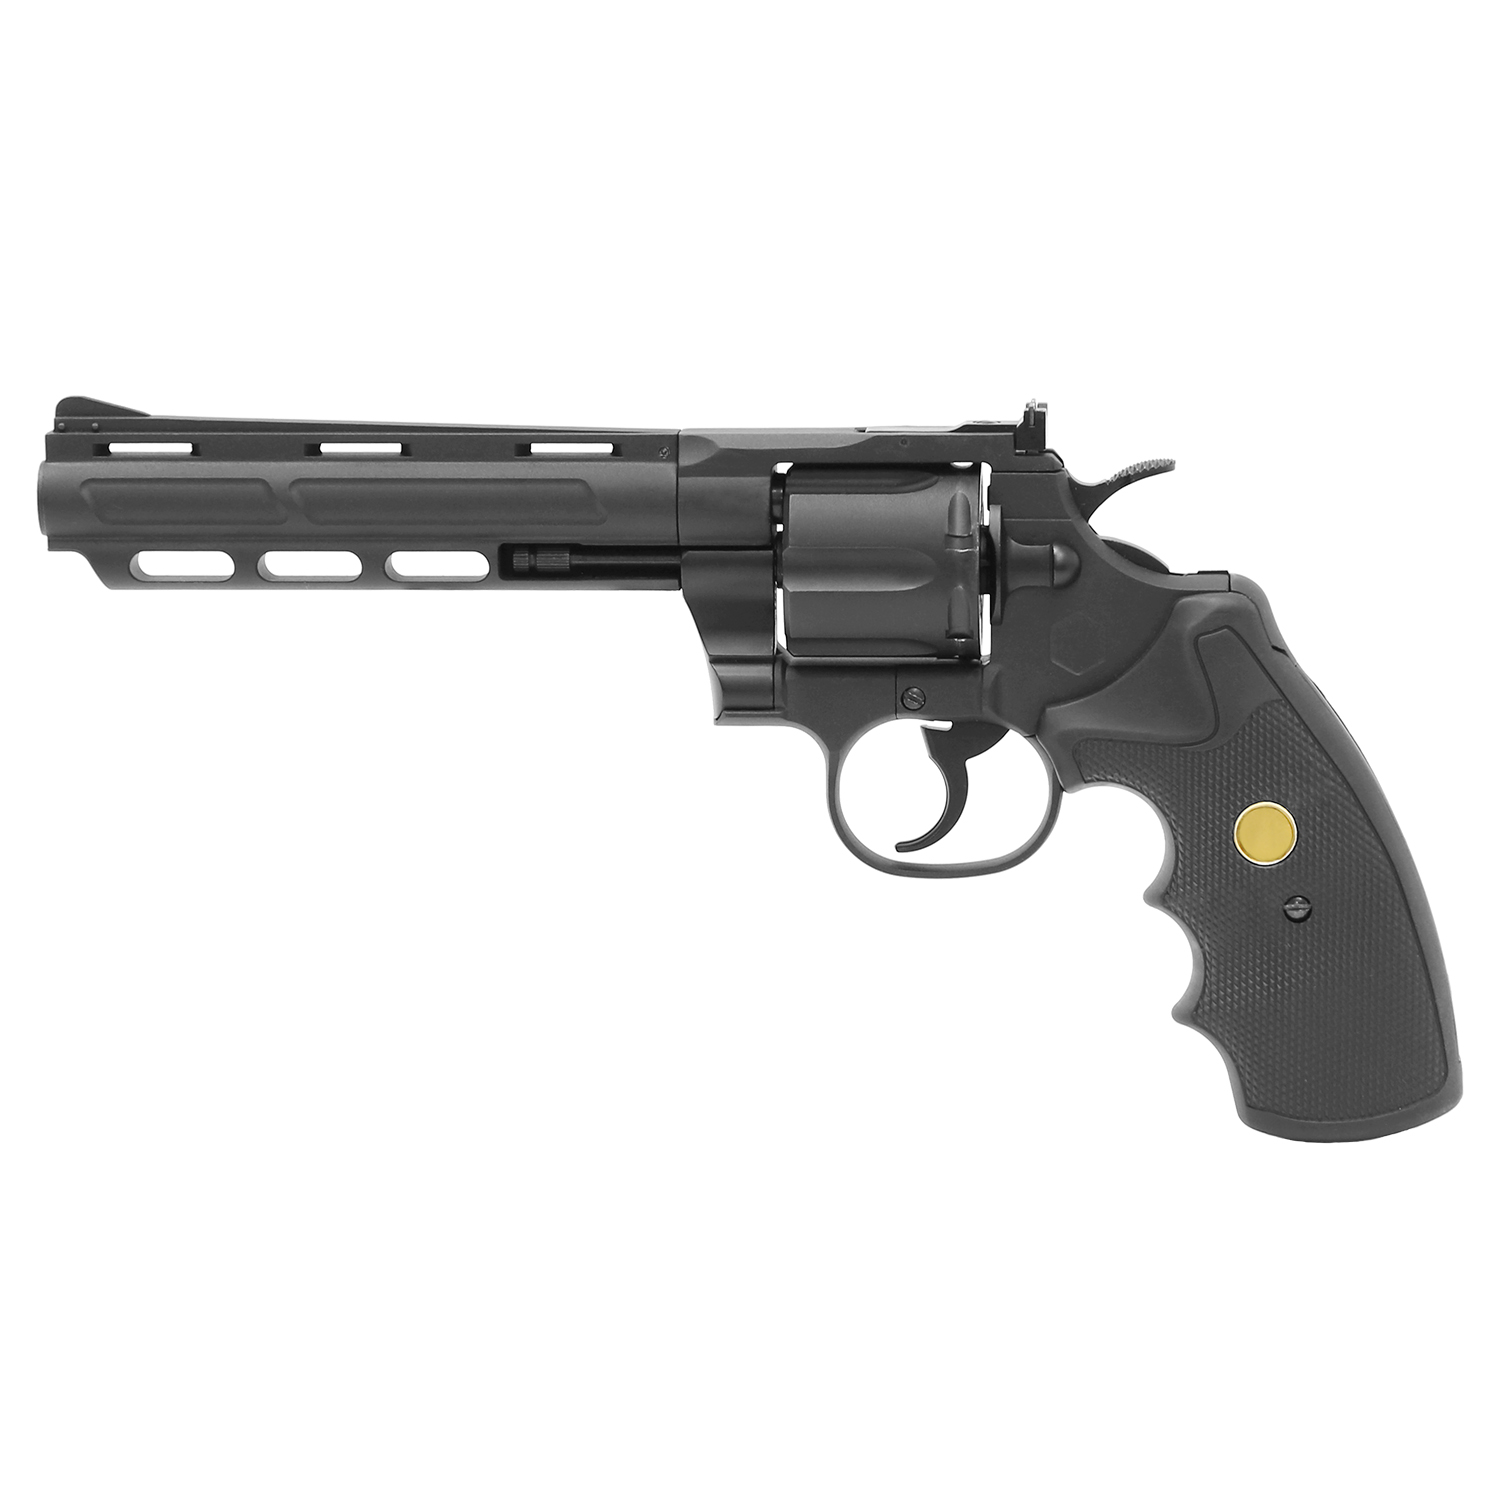 King Arms Python 357 Custom 1 CO2 Gas Revolver - 6 Inch